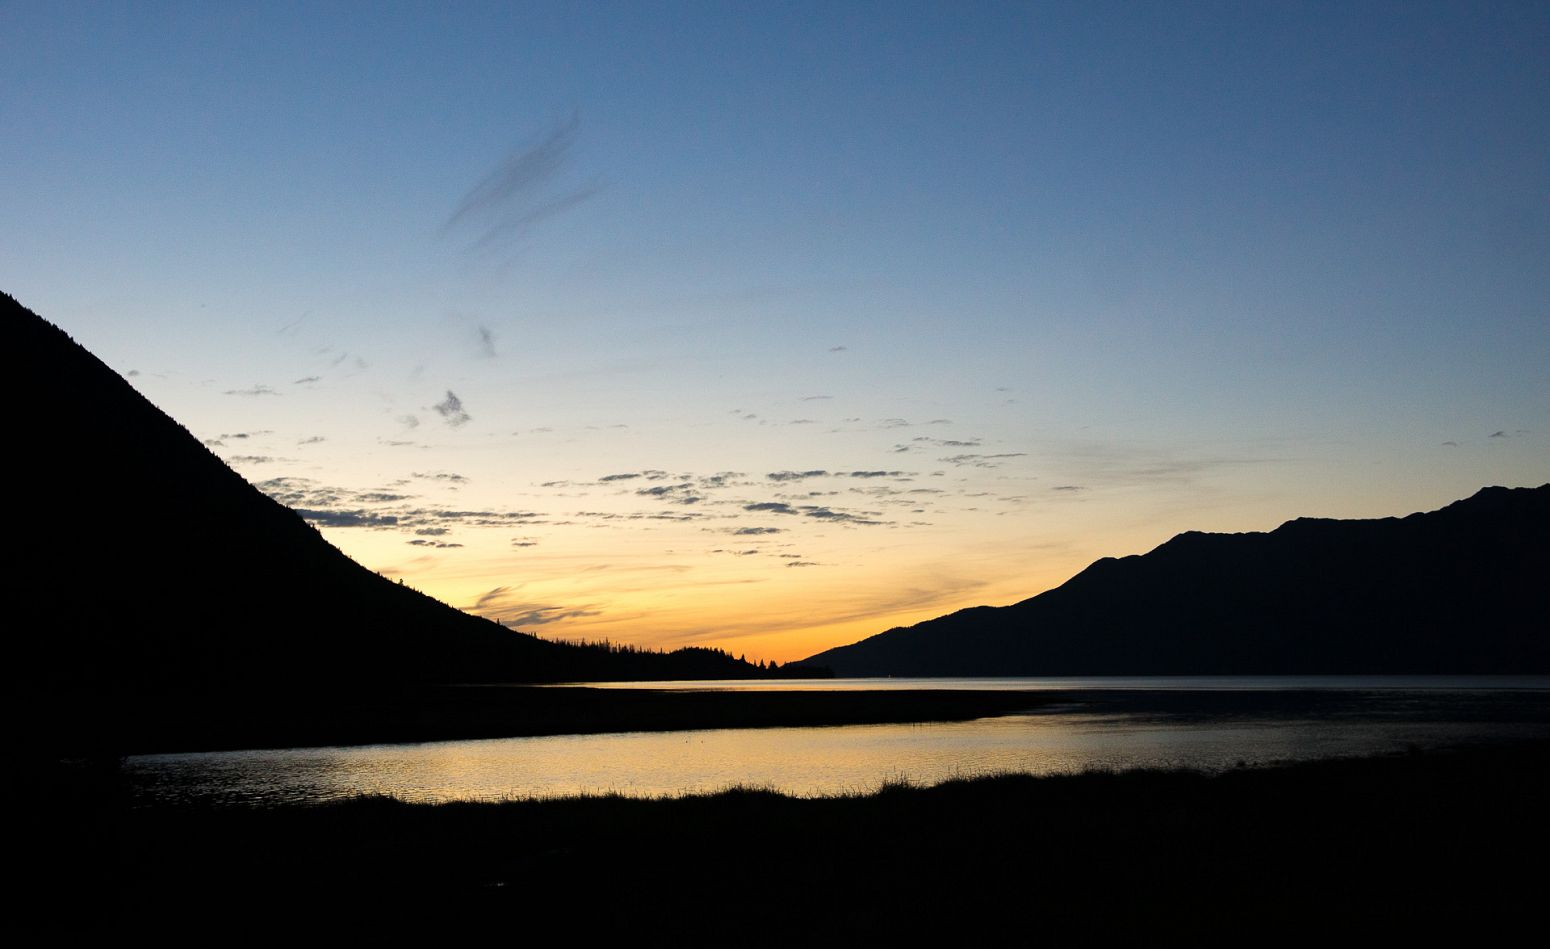 Sunset over Porcupine Creek, Hope, Alaska, USA